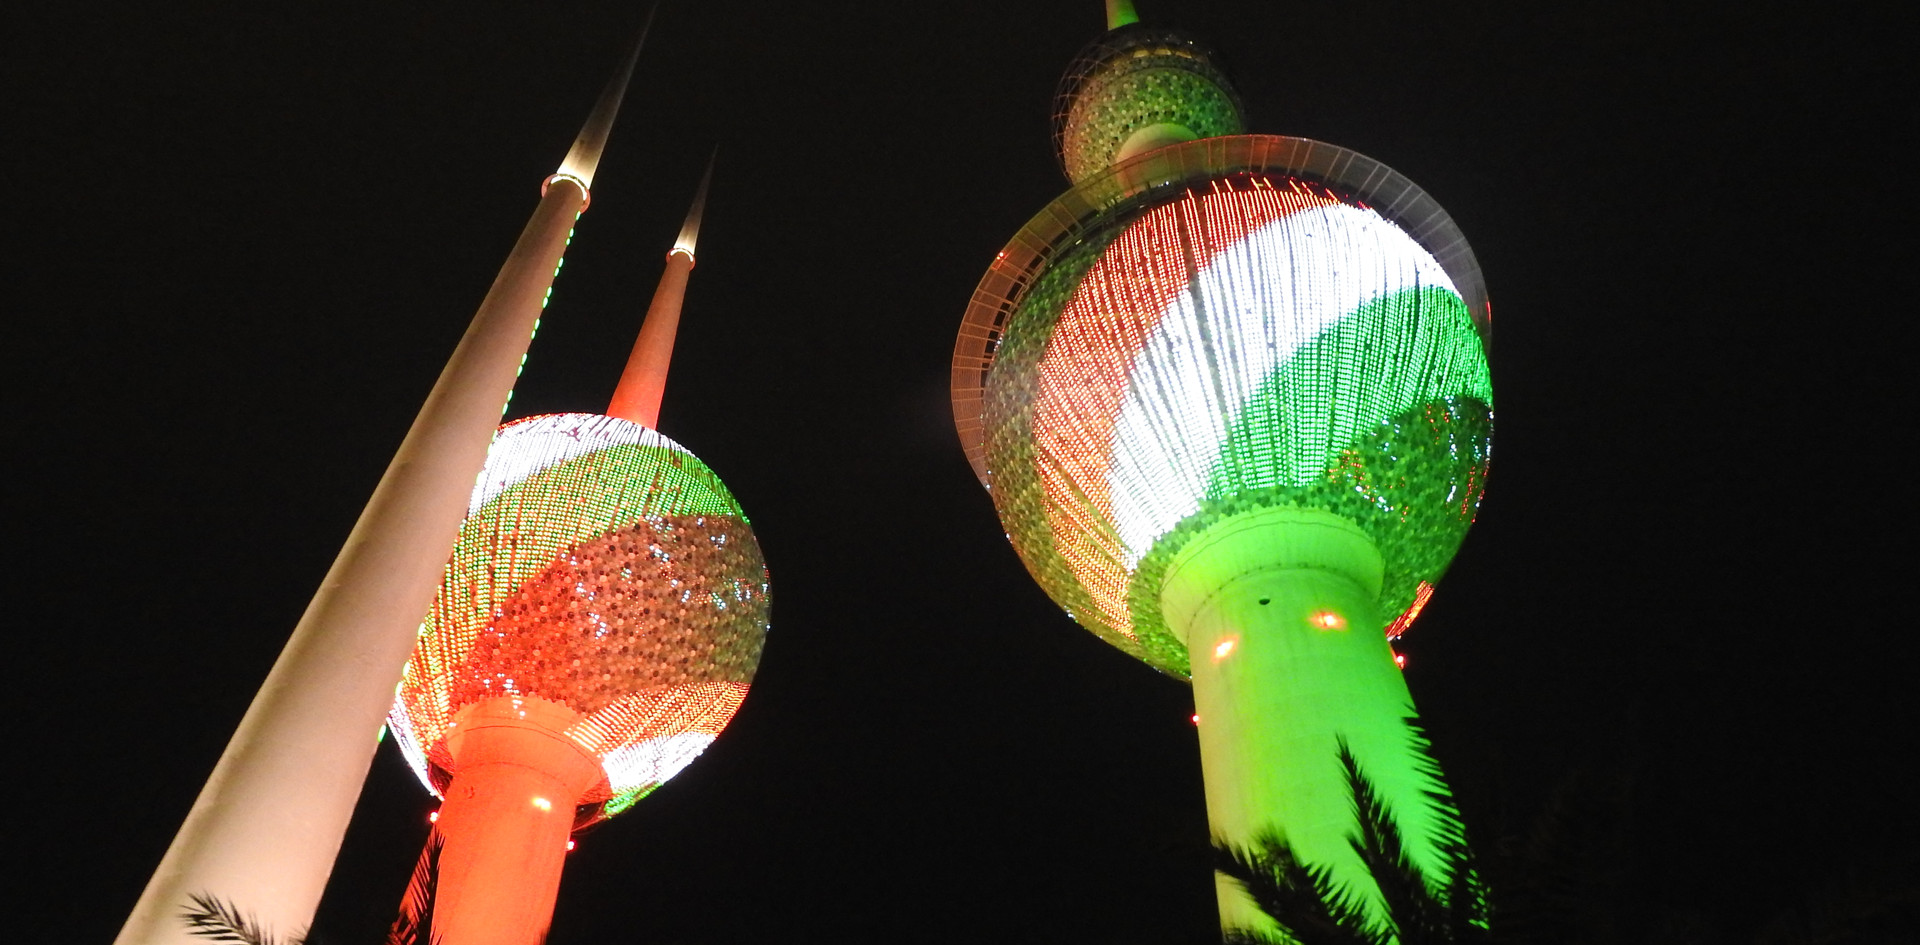 Kuwait Towers by night